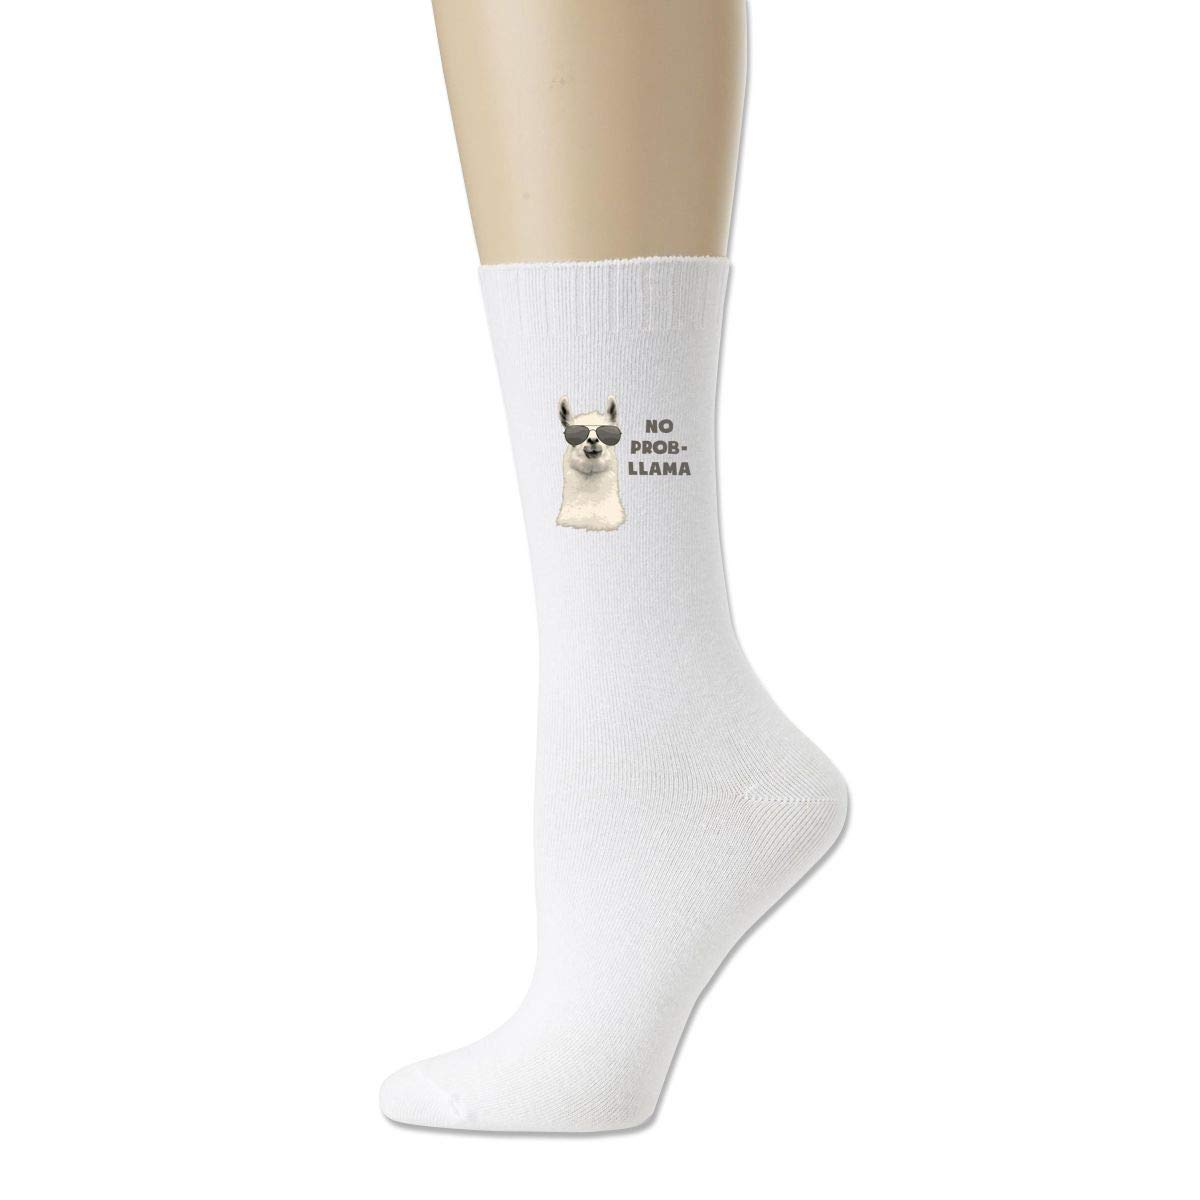 Men High Ankle Cotton Crew Socks No Prob Llama Casual Sport Stocking